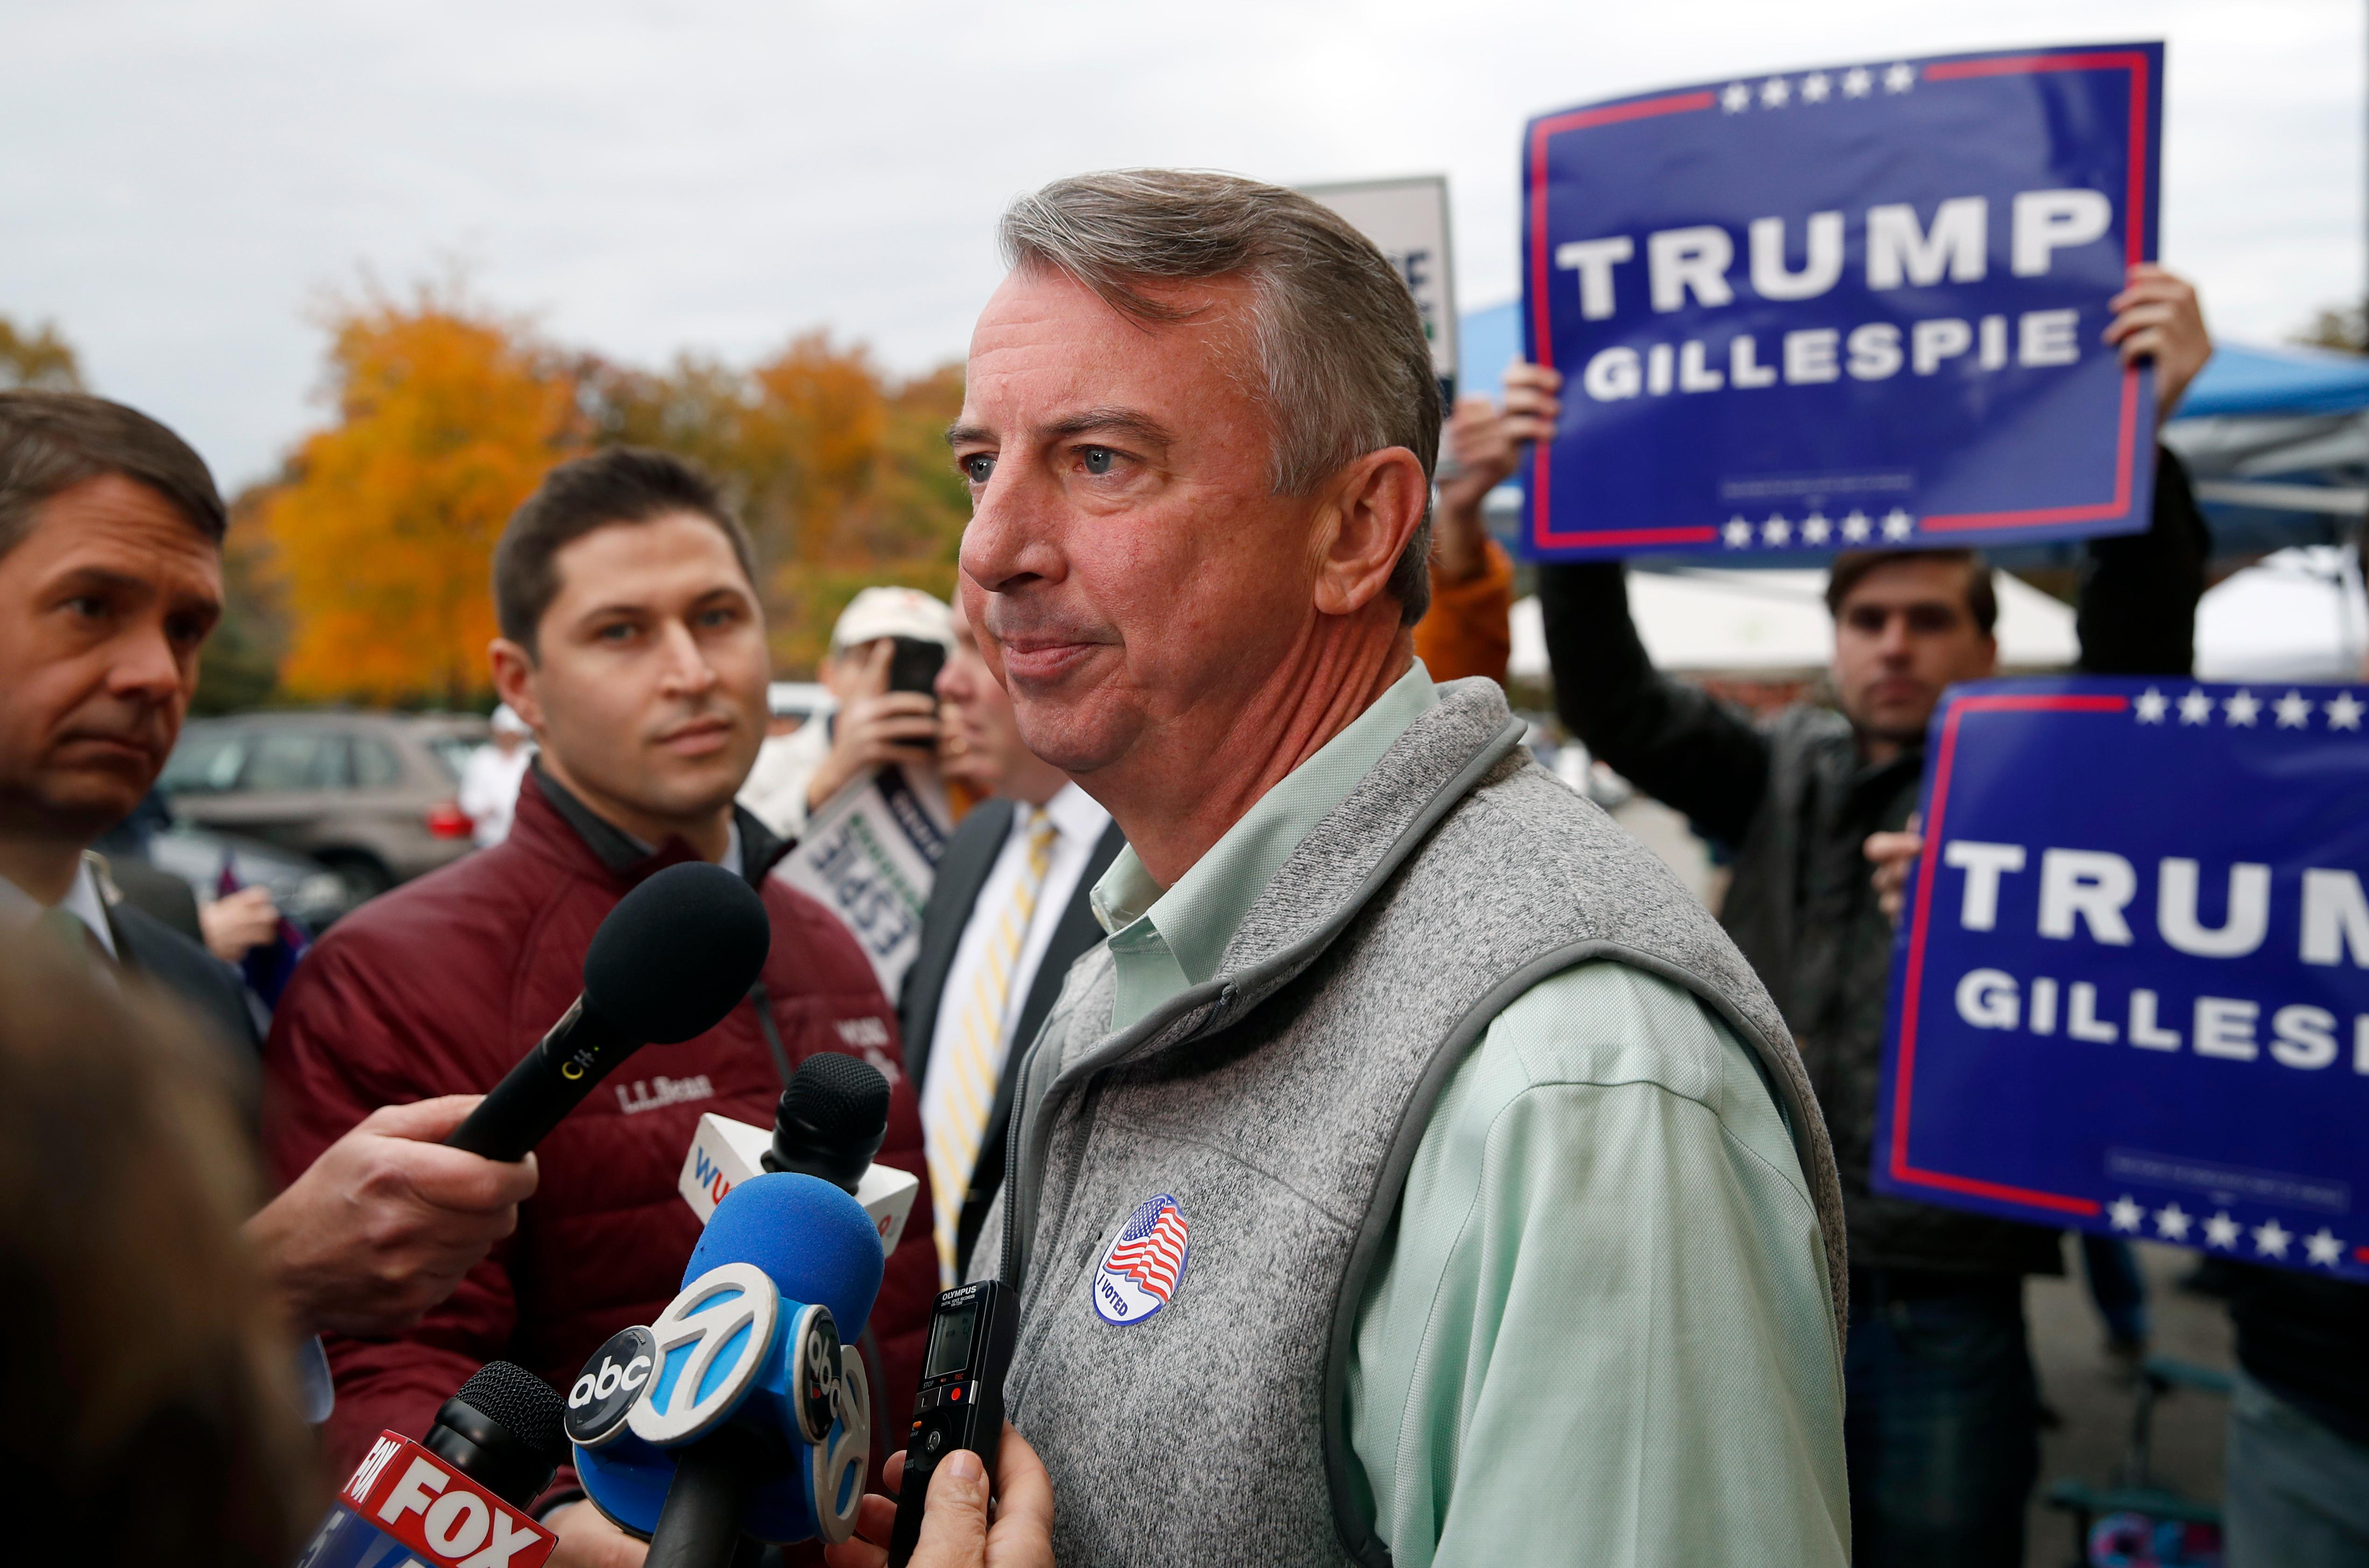 Republican candidate for Virginia governor Ed Gillespie pauses while speaking with reporters after voting at his polling place Tuesday, Nov. 7, 2017, in Alexandria, Va. Gillespie faces Democrat Lt. Gov. Ralph Northam in Tuesday's election. (AP Photo/Alex Brandon)